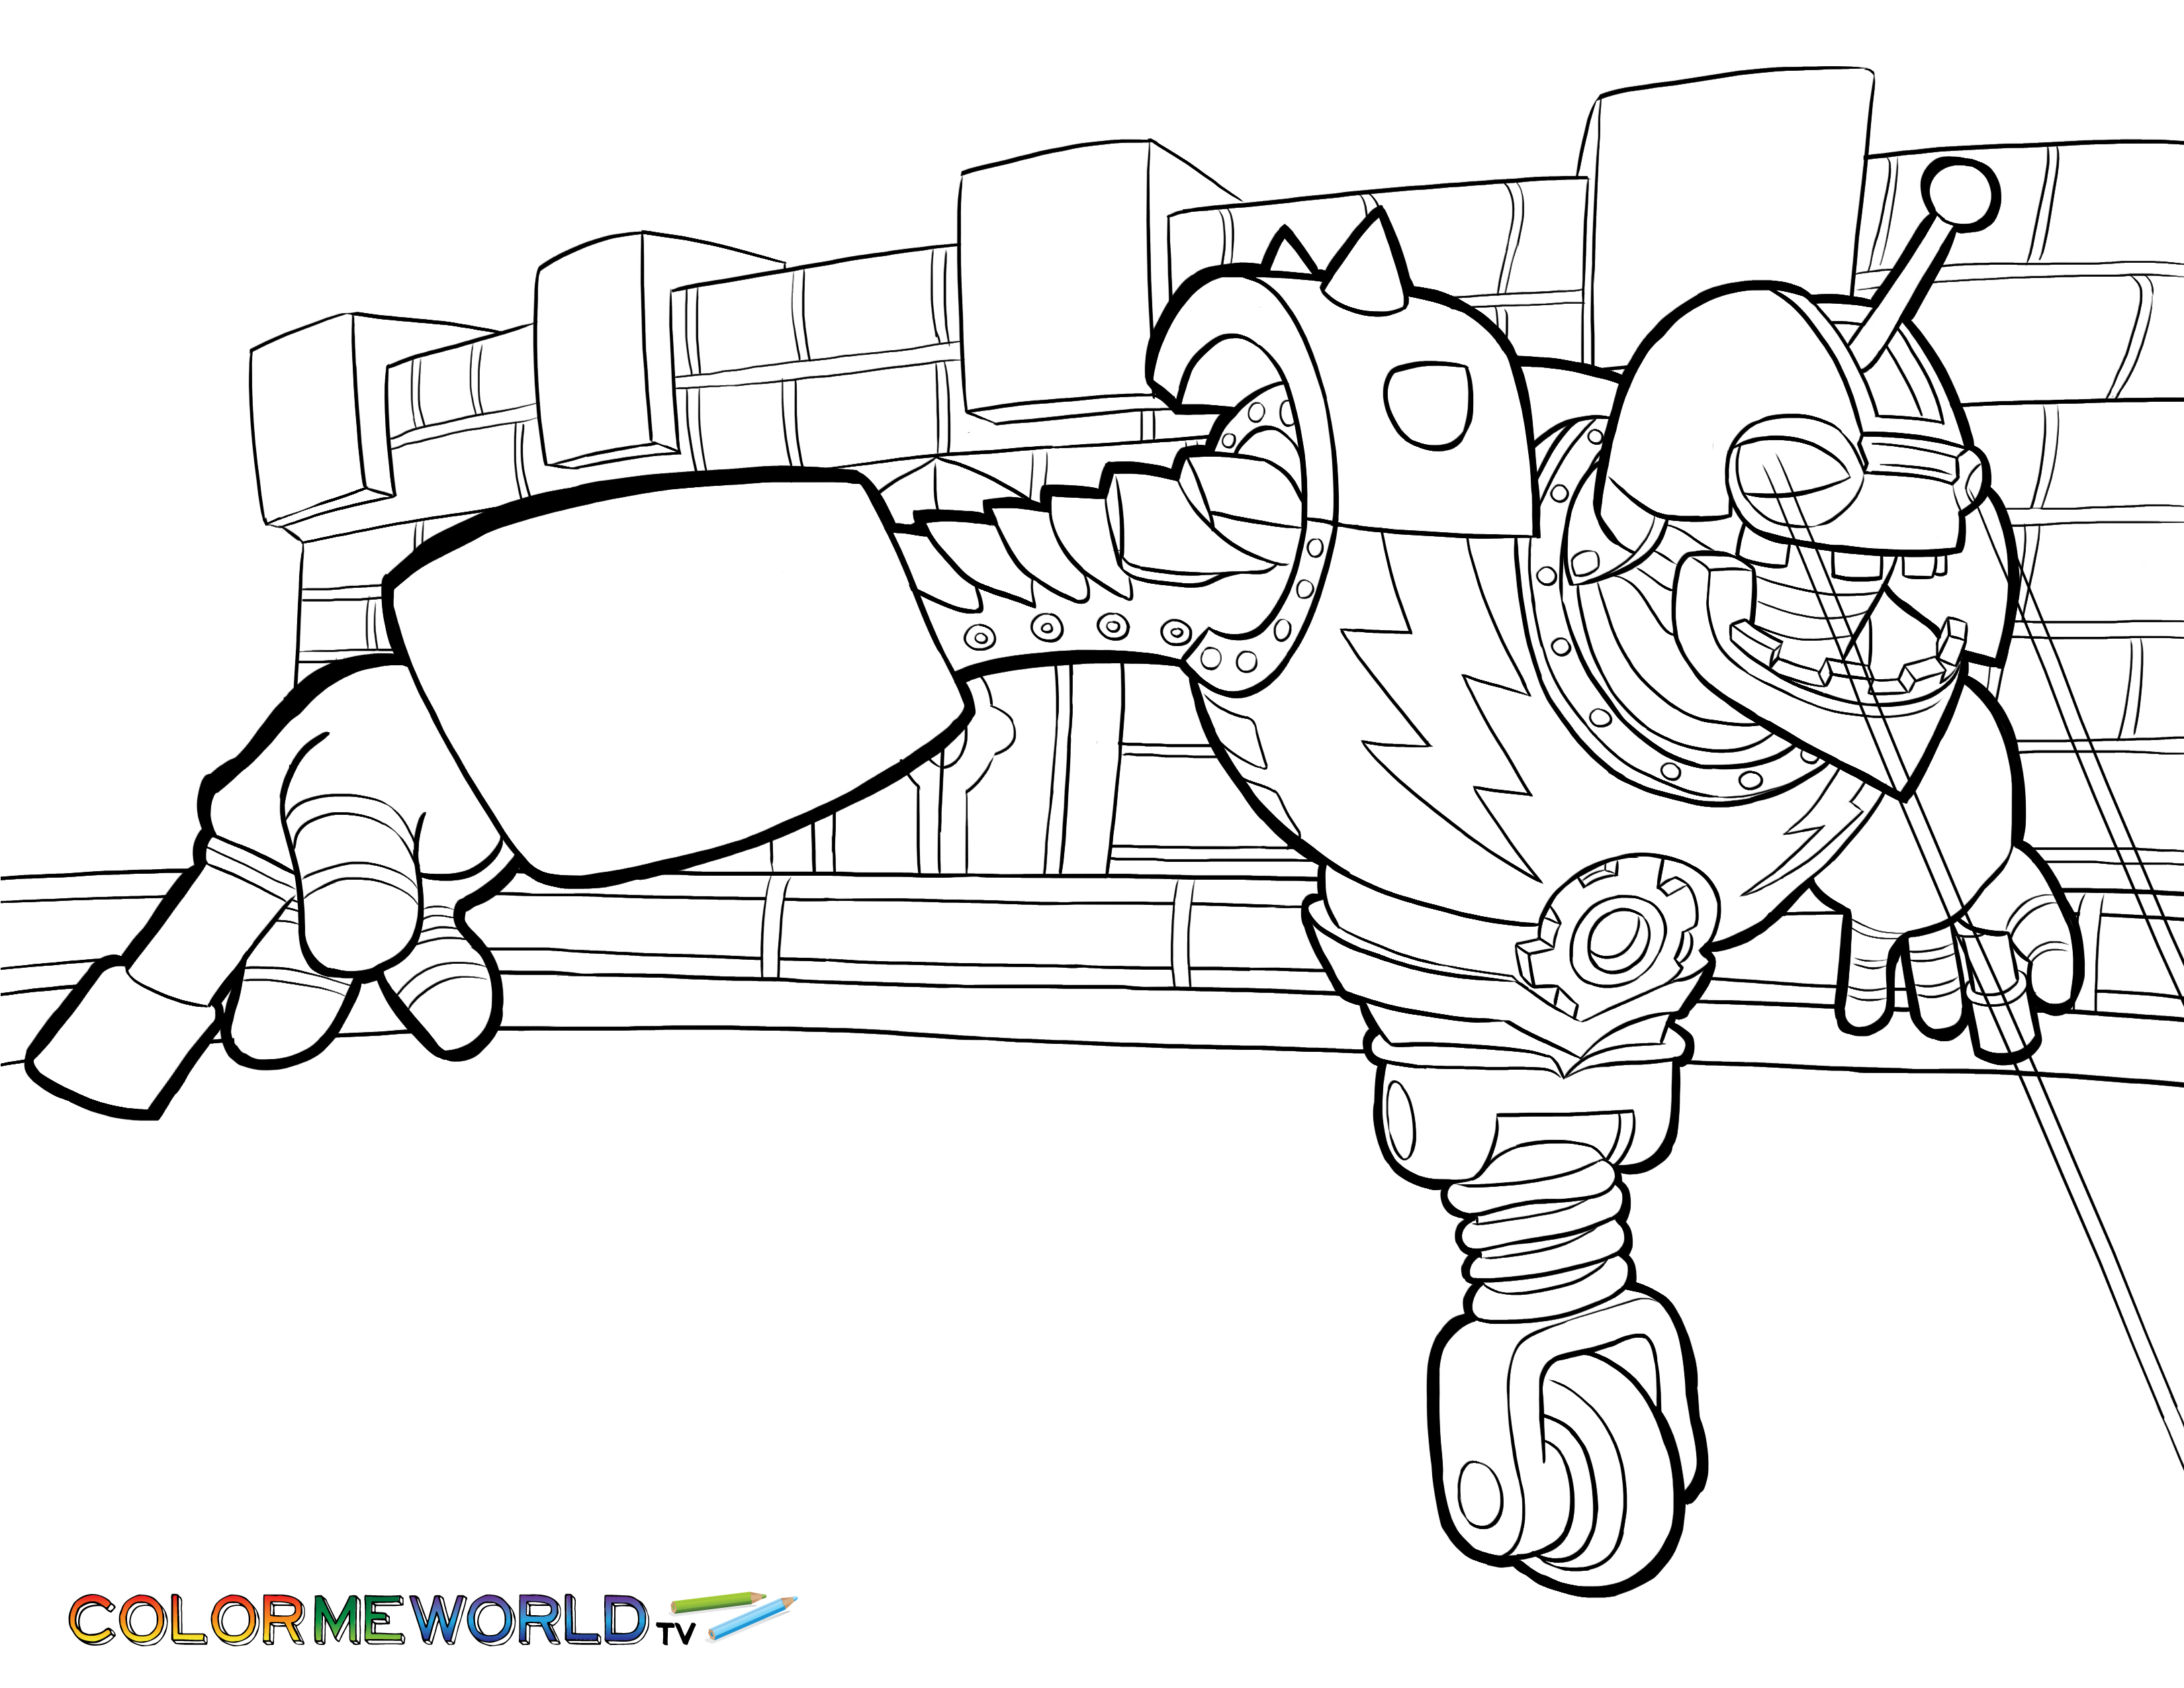 Bouncer Coloring Page Coloring Pages Crayola Coloring Pages Coloring Pages For Kids